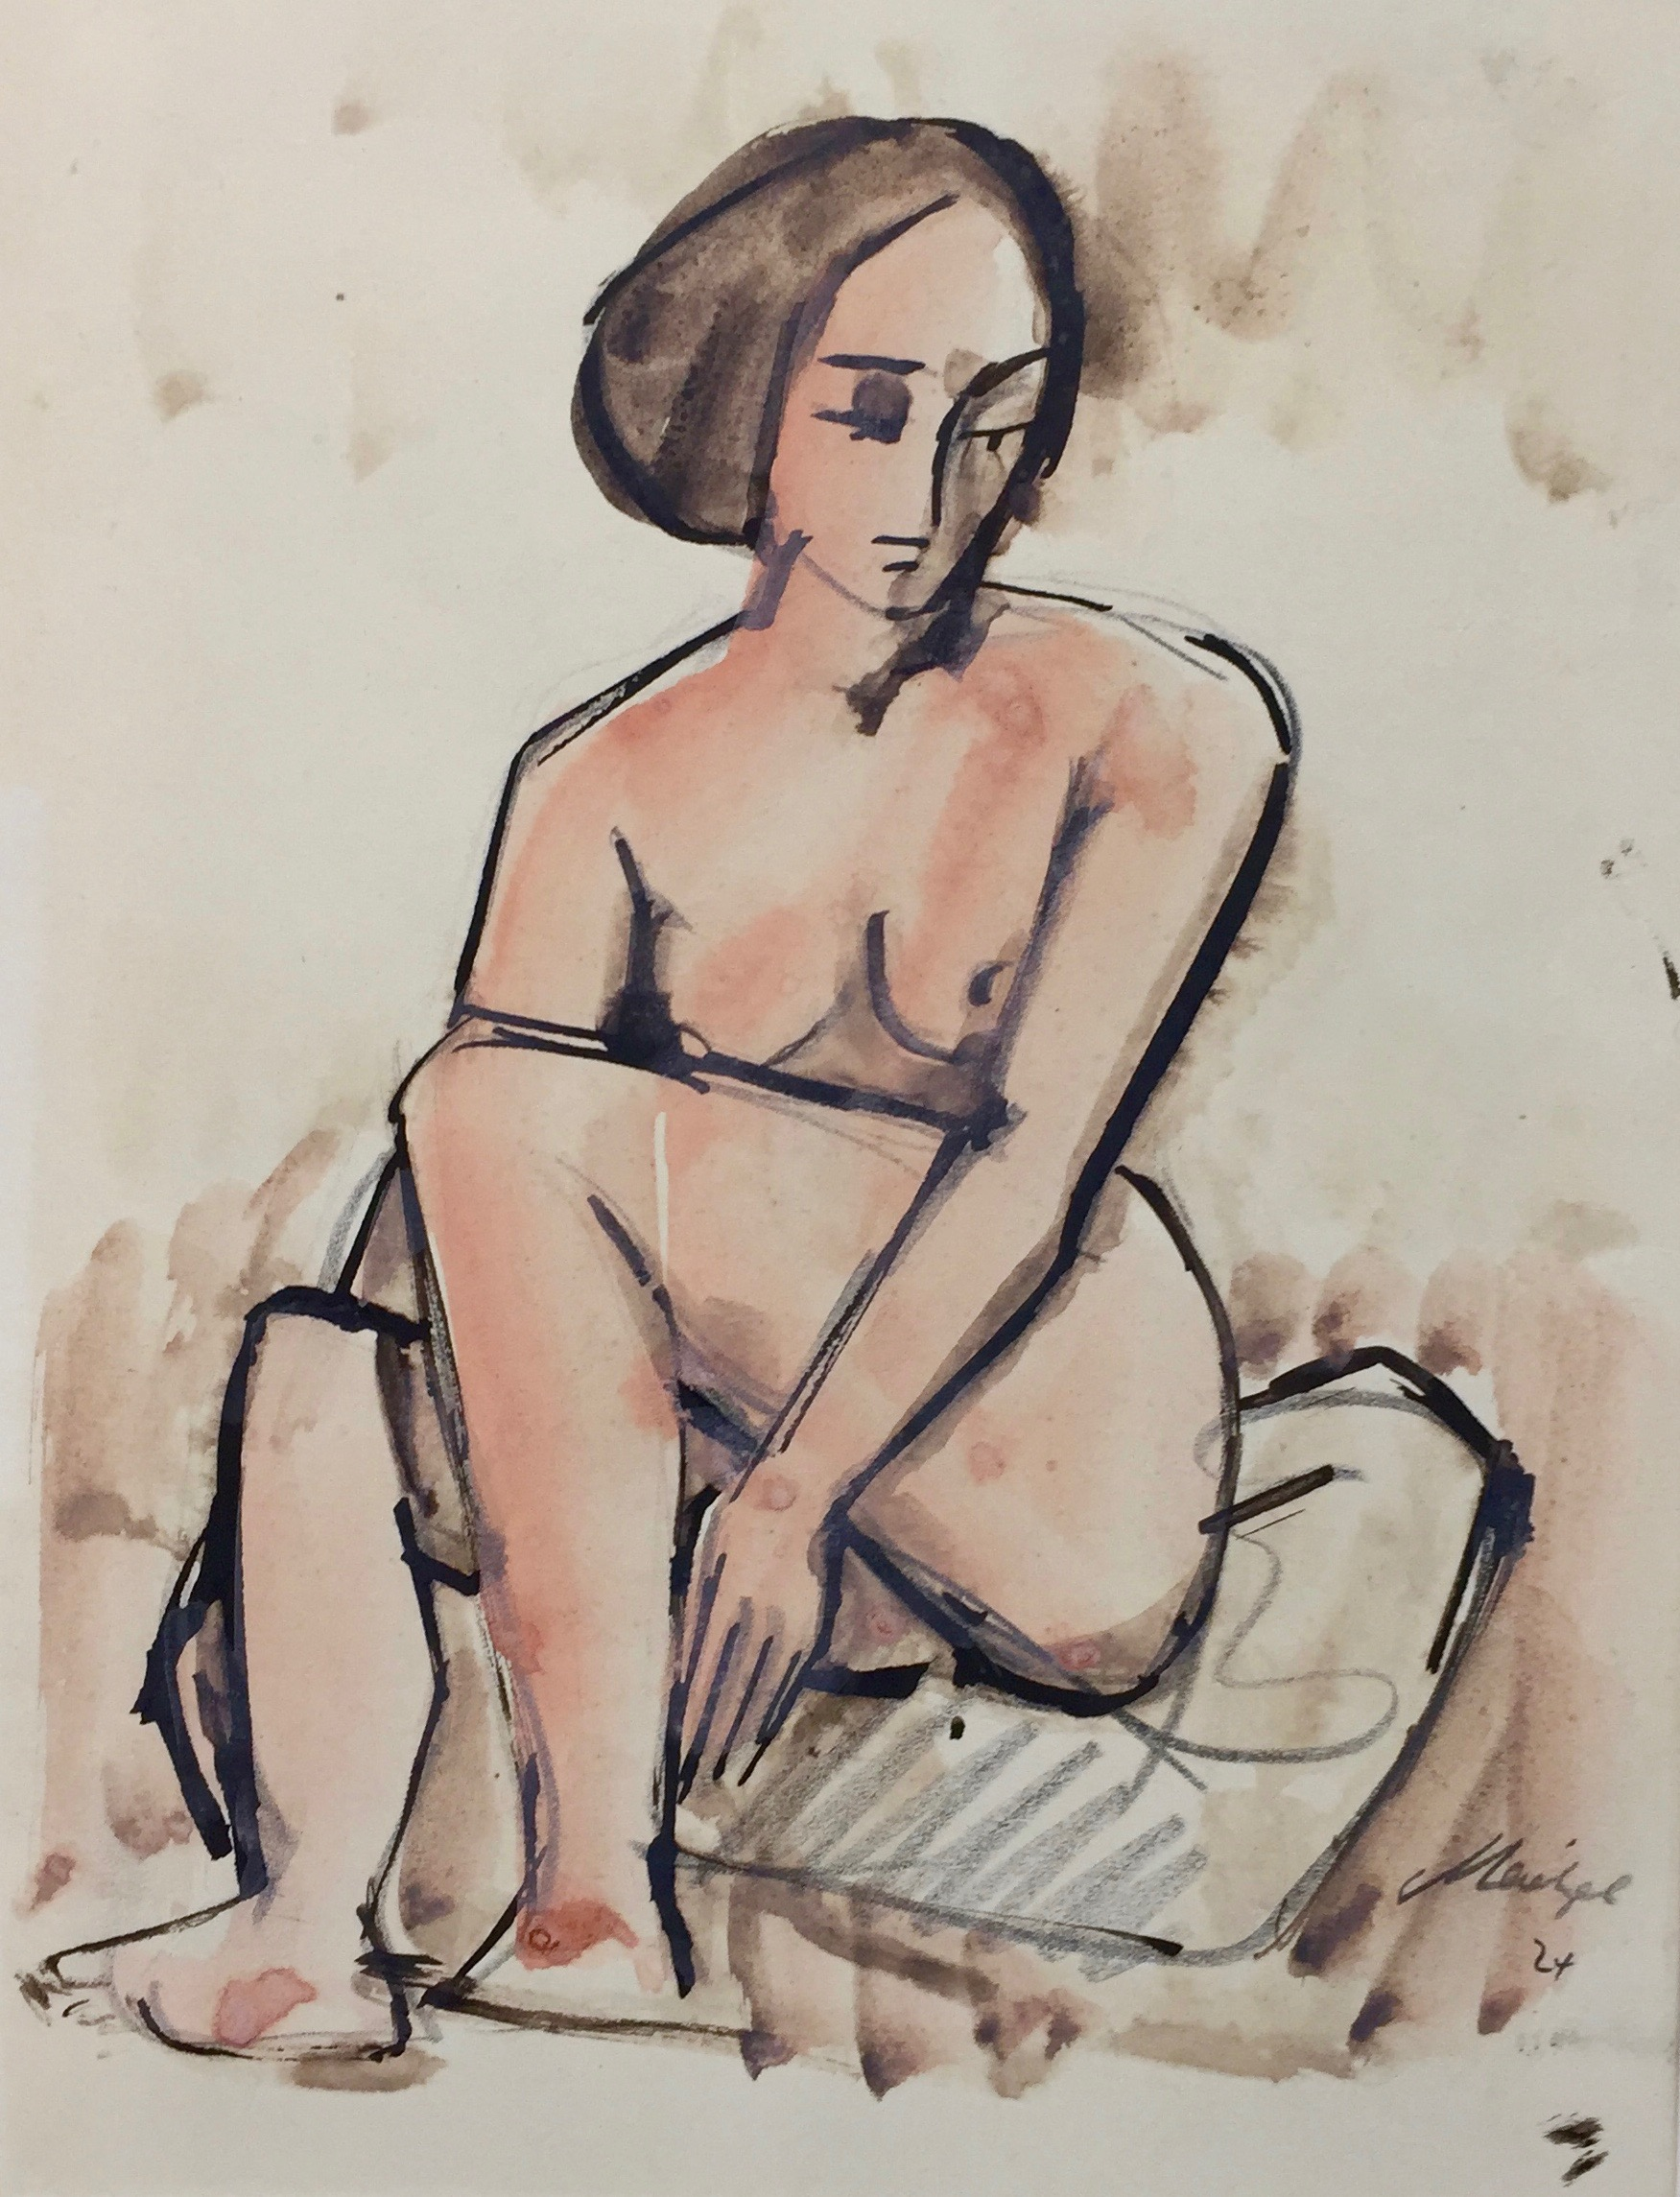 Emil Maetzel | Sitting Nude | 1924 | watercolour, ink and pencil | signed and dated | 23 x 18